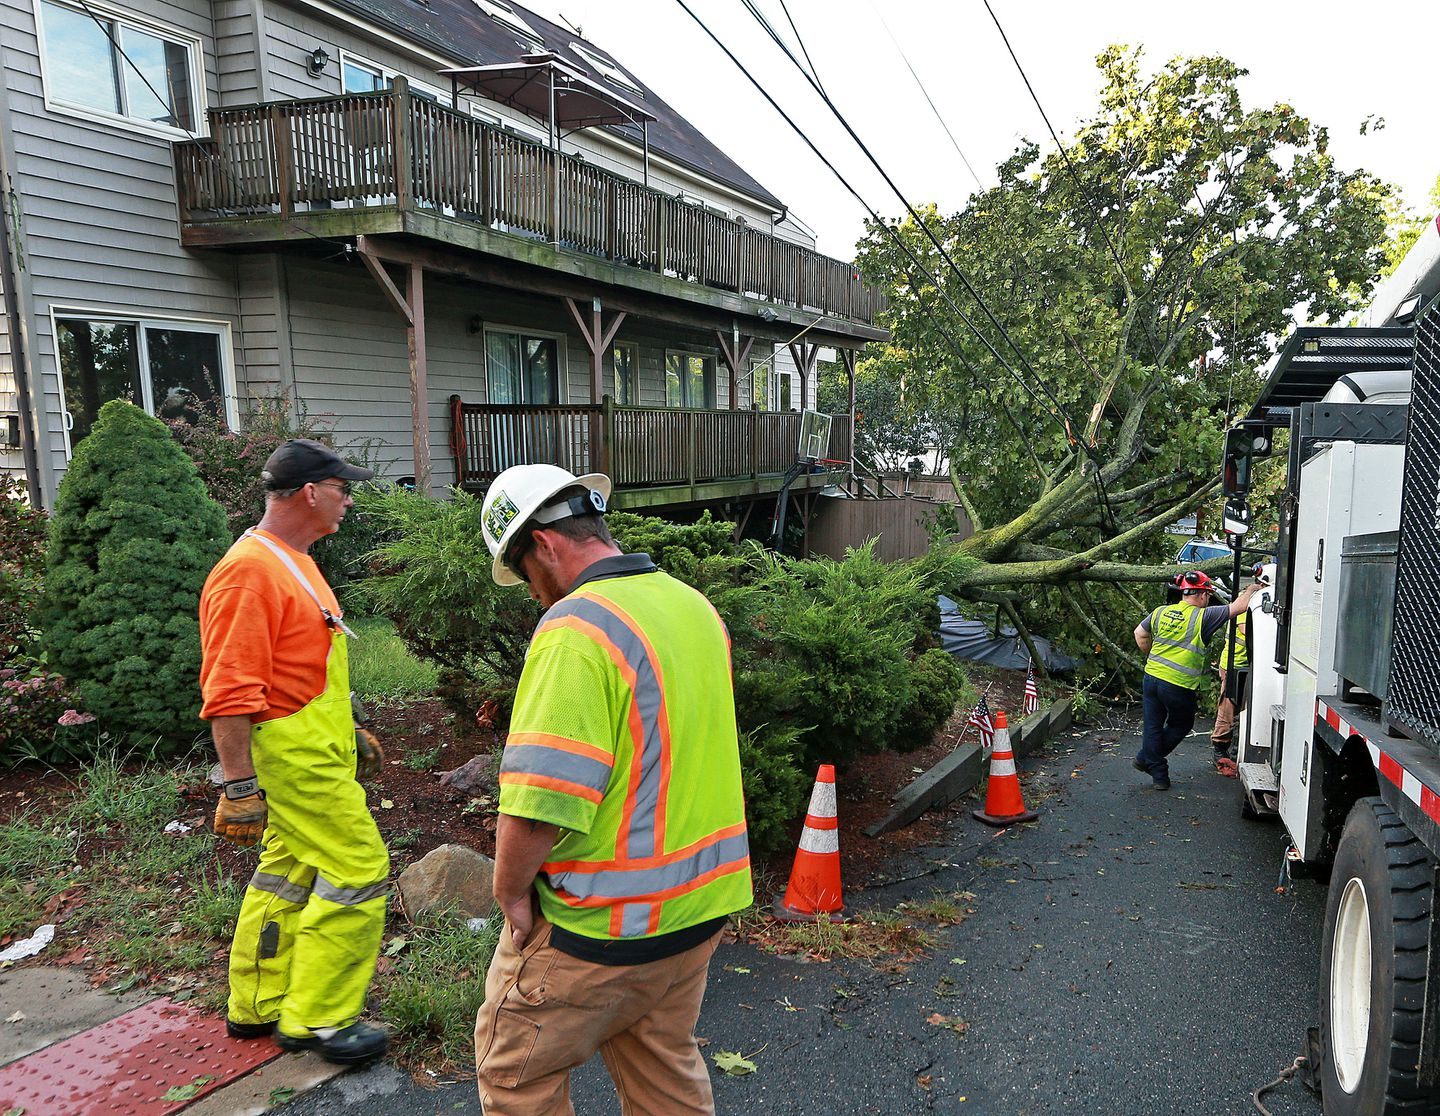 A tree fell on power lines on the corner of Winter Street and Riverside Park.